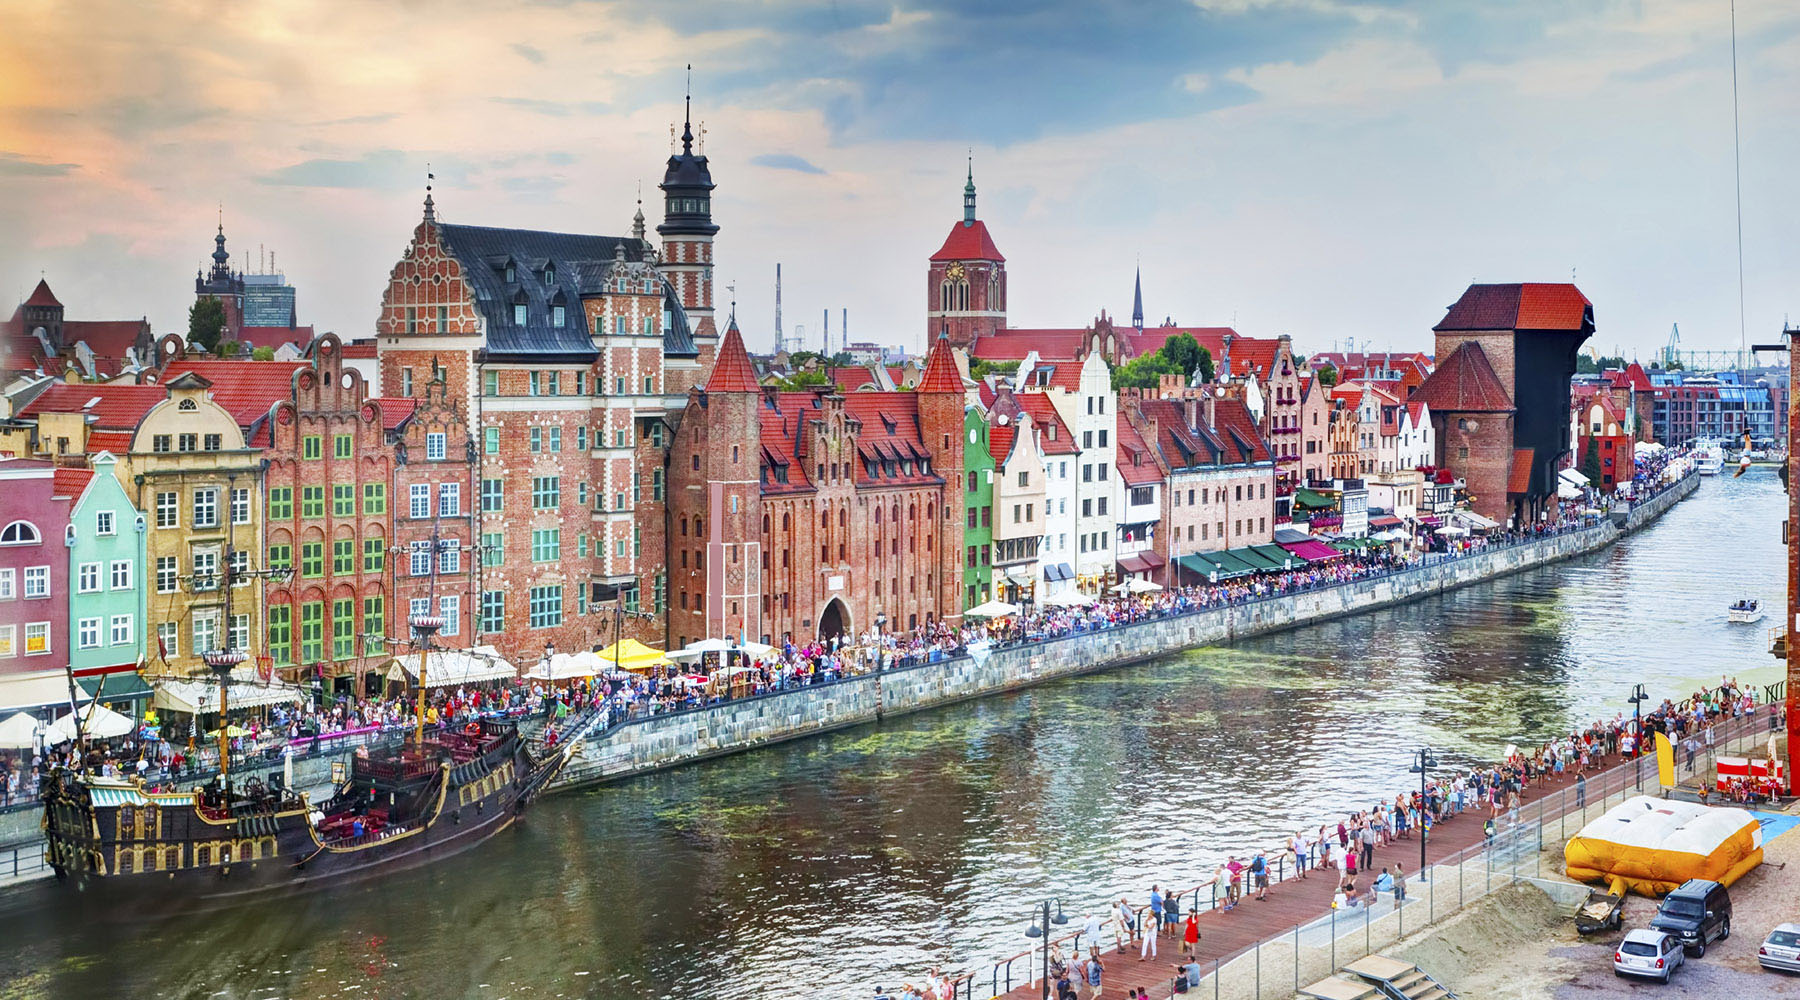 With a growing talent pool & interest in tech among youth, Poland is cementing itself as an IT hub